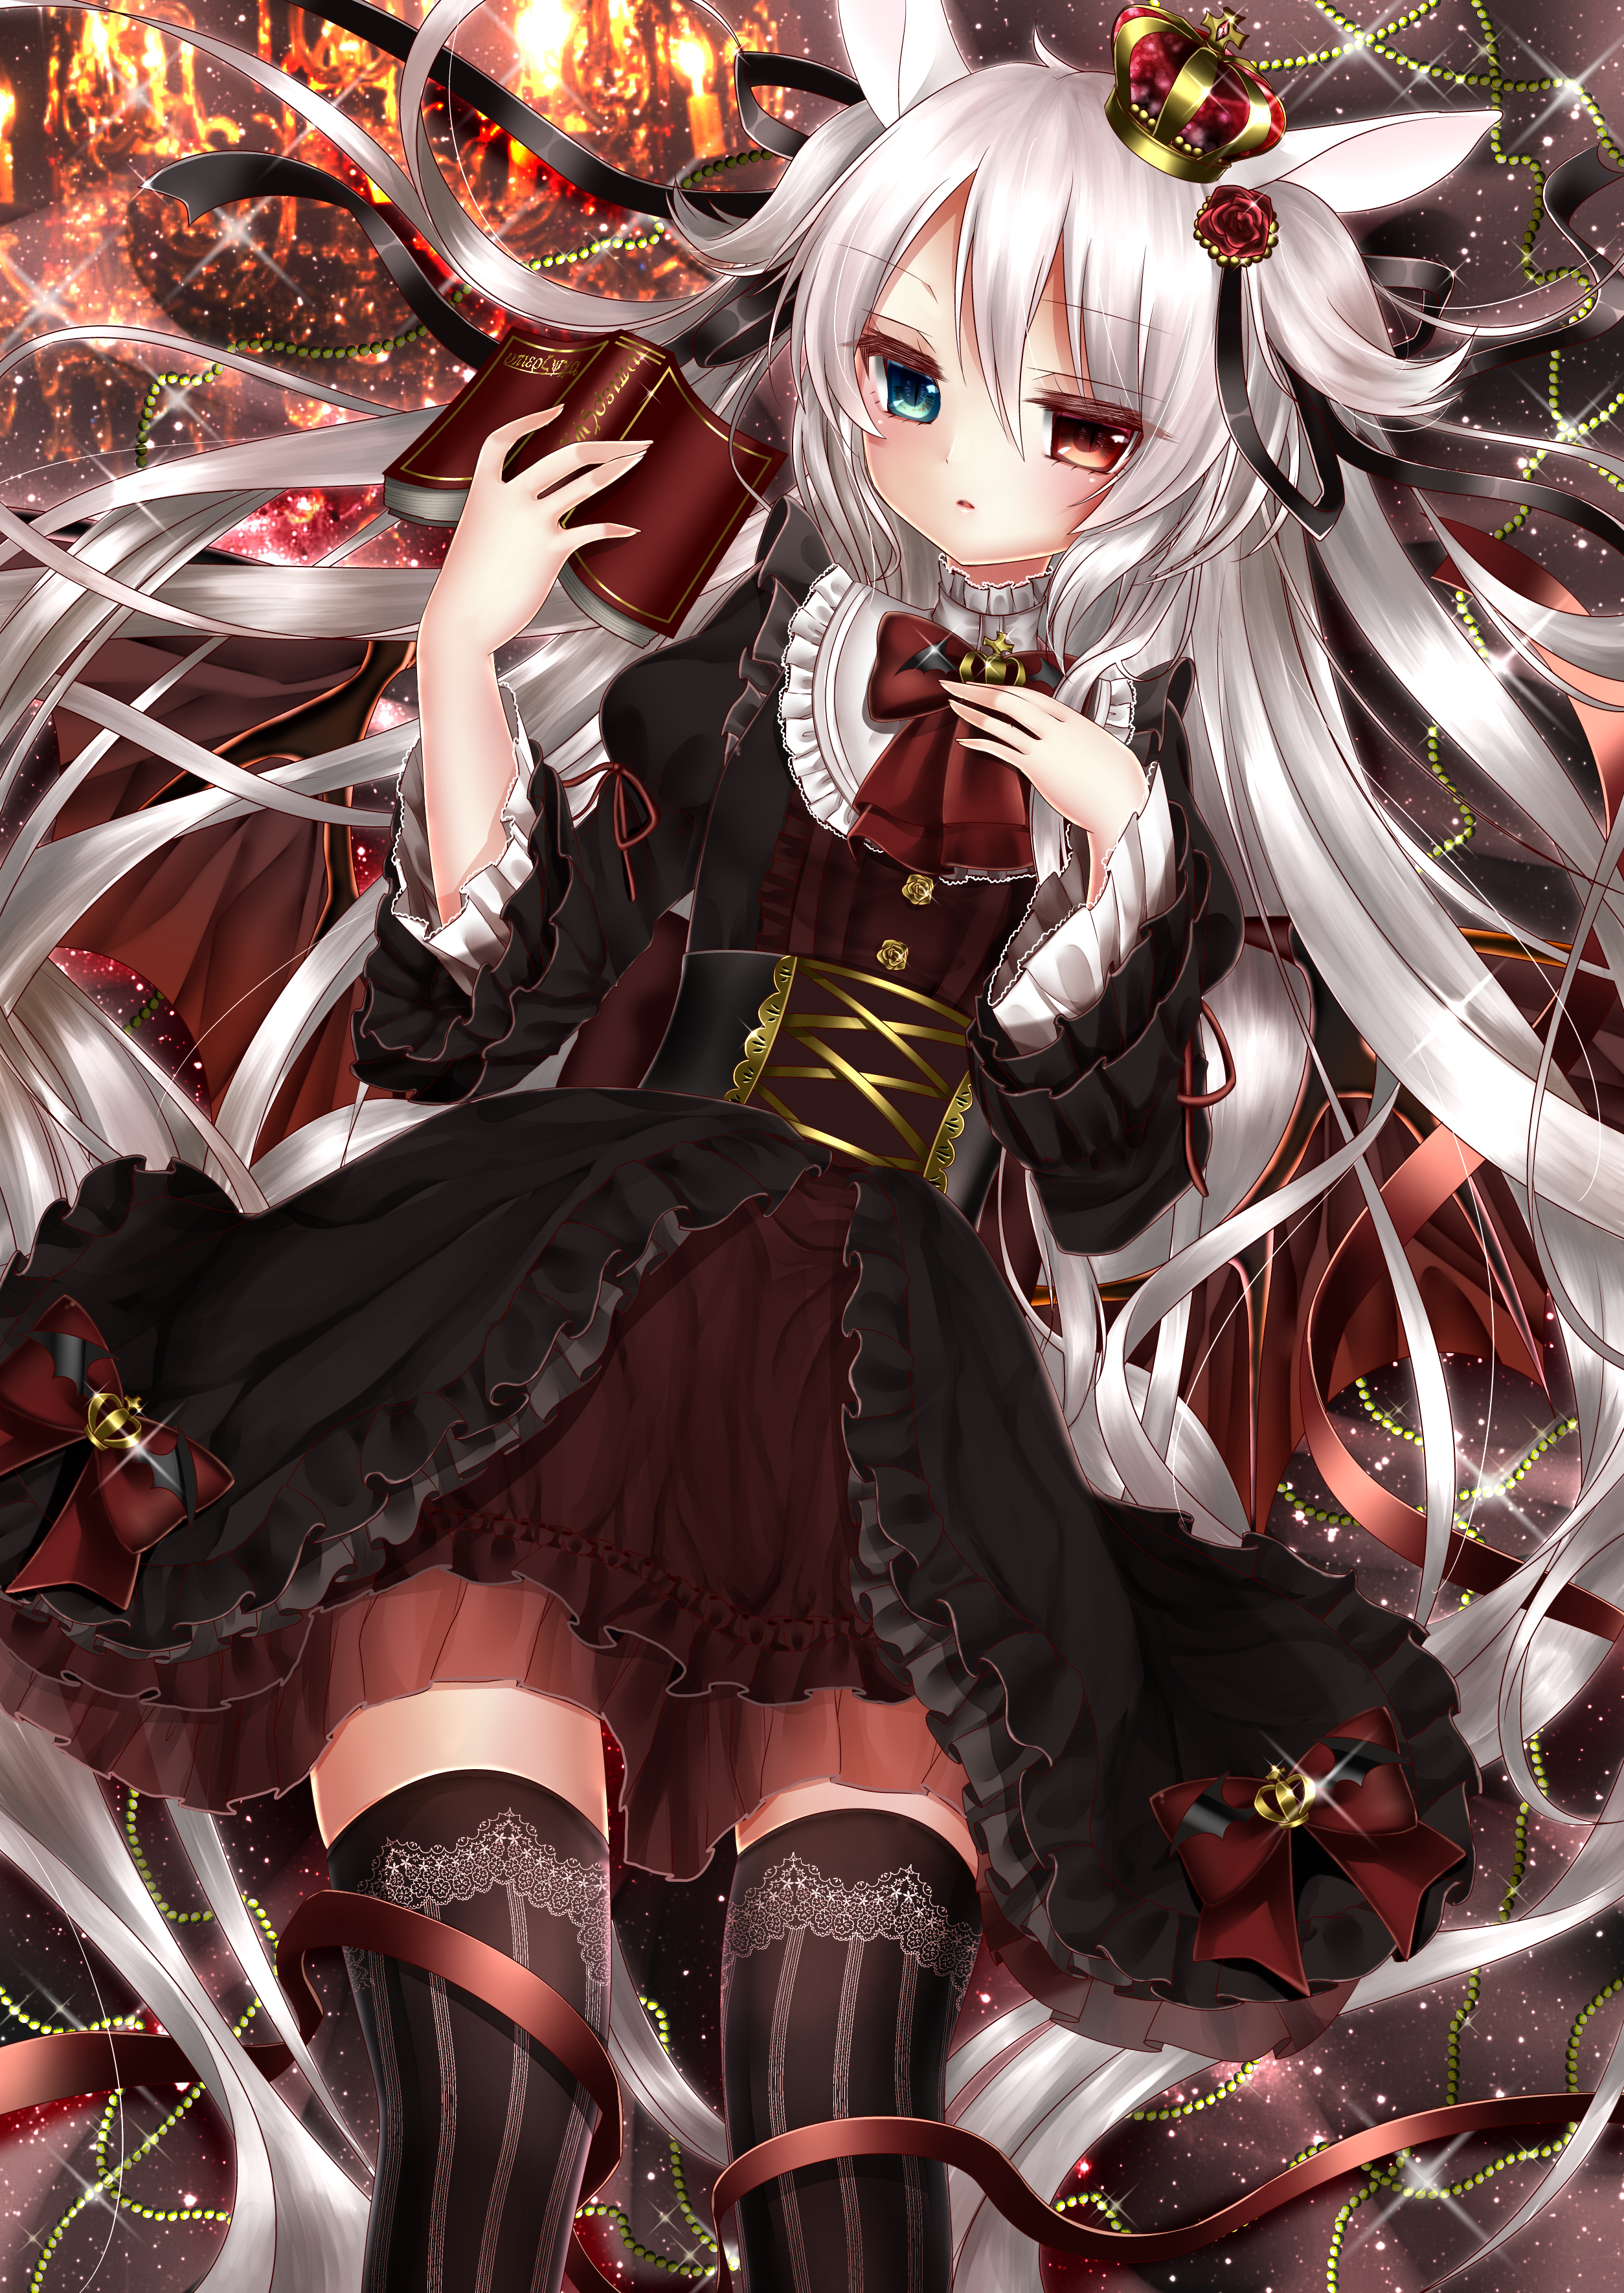 anime girl with silver hair and red eyes